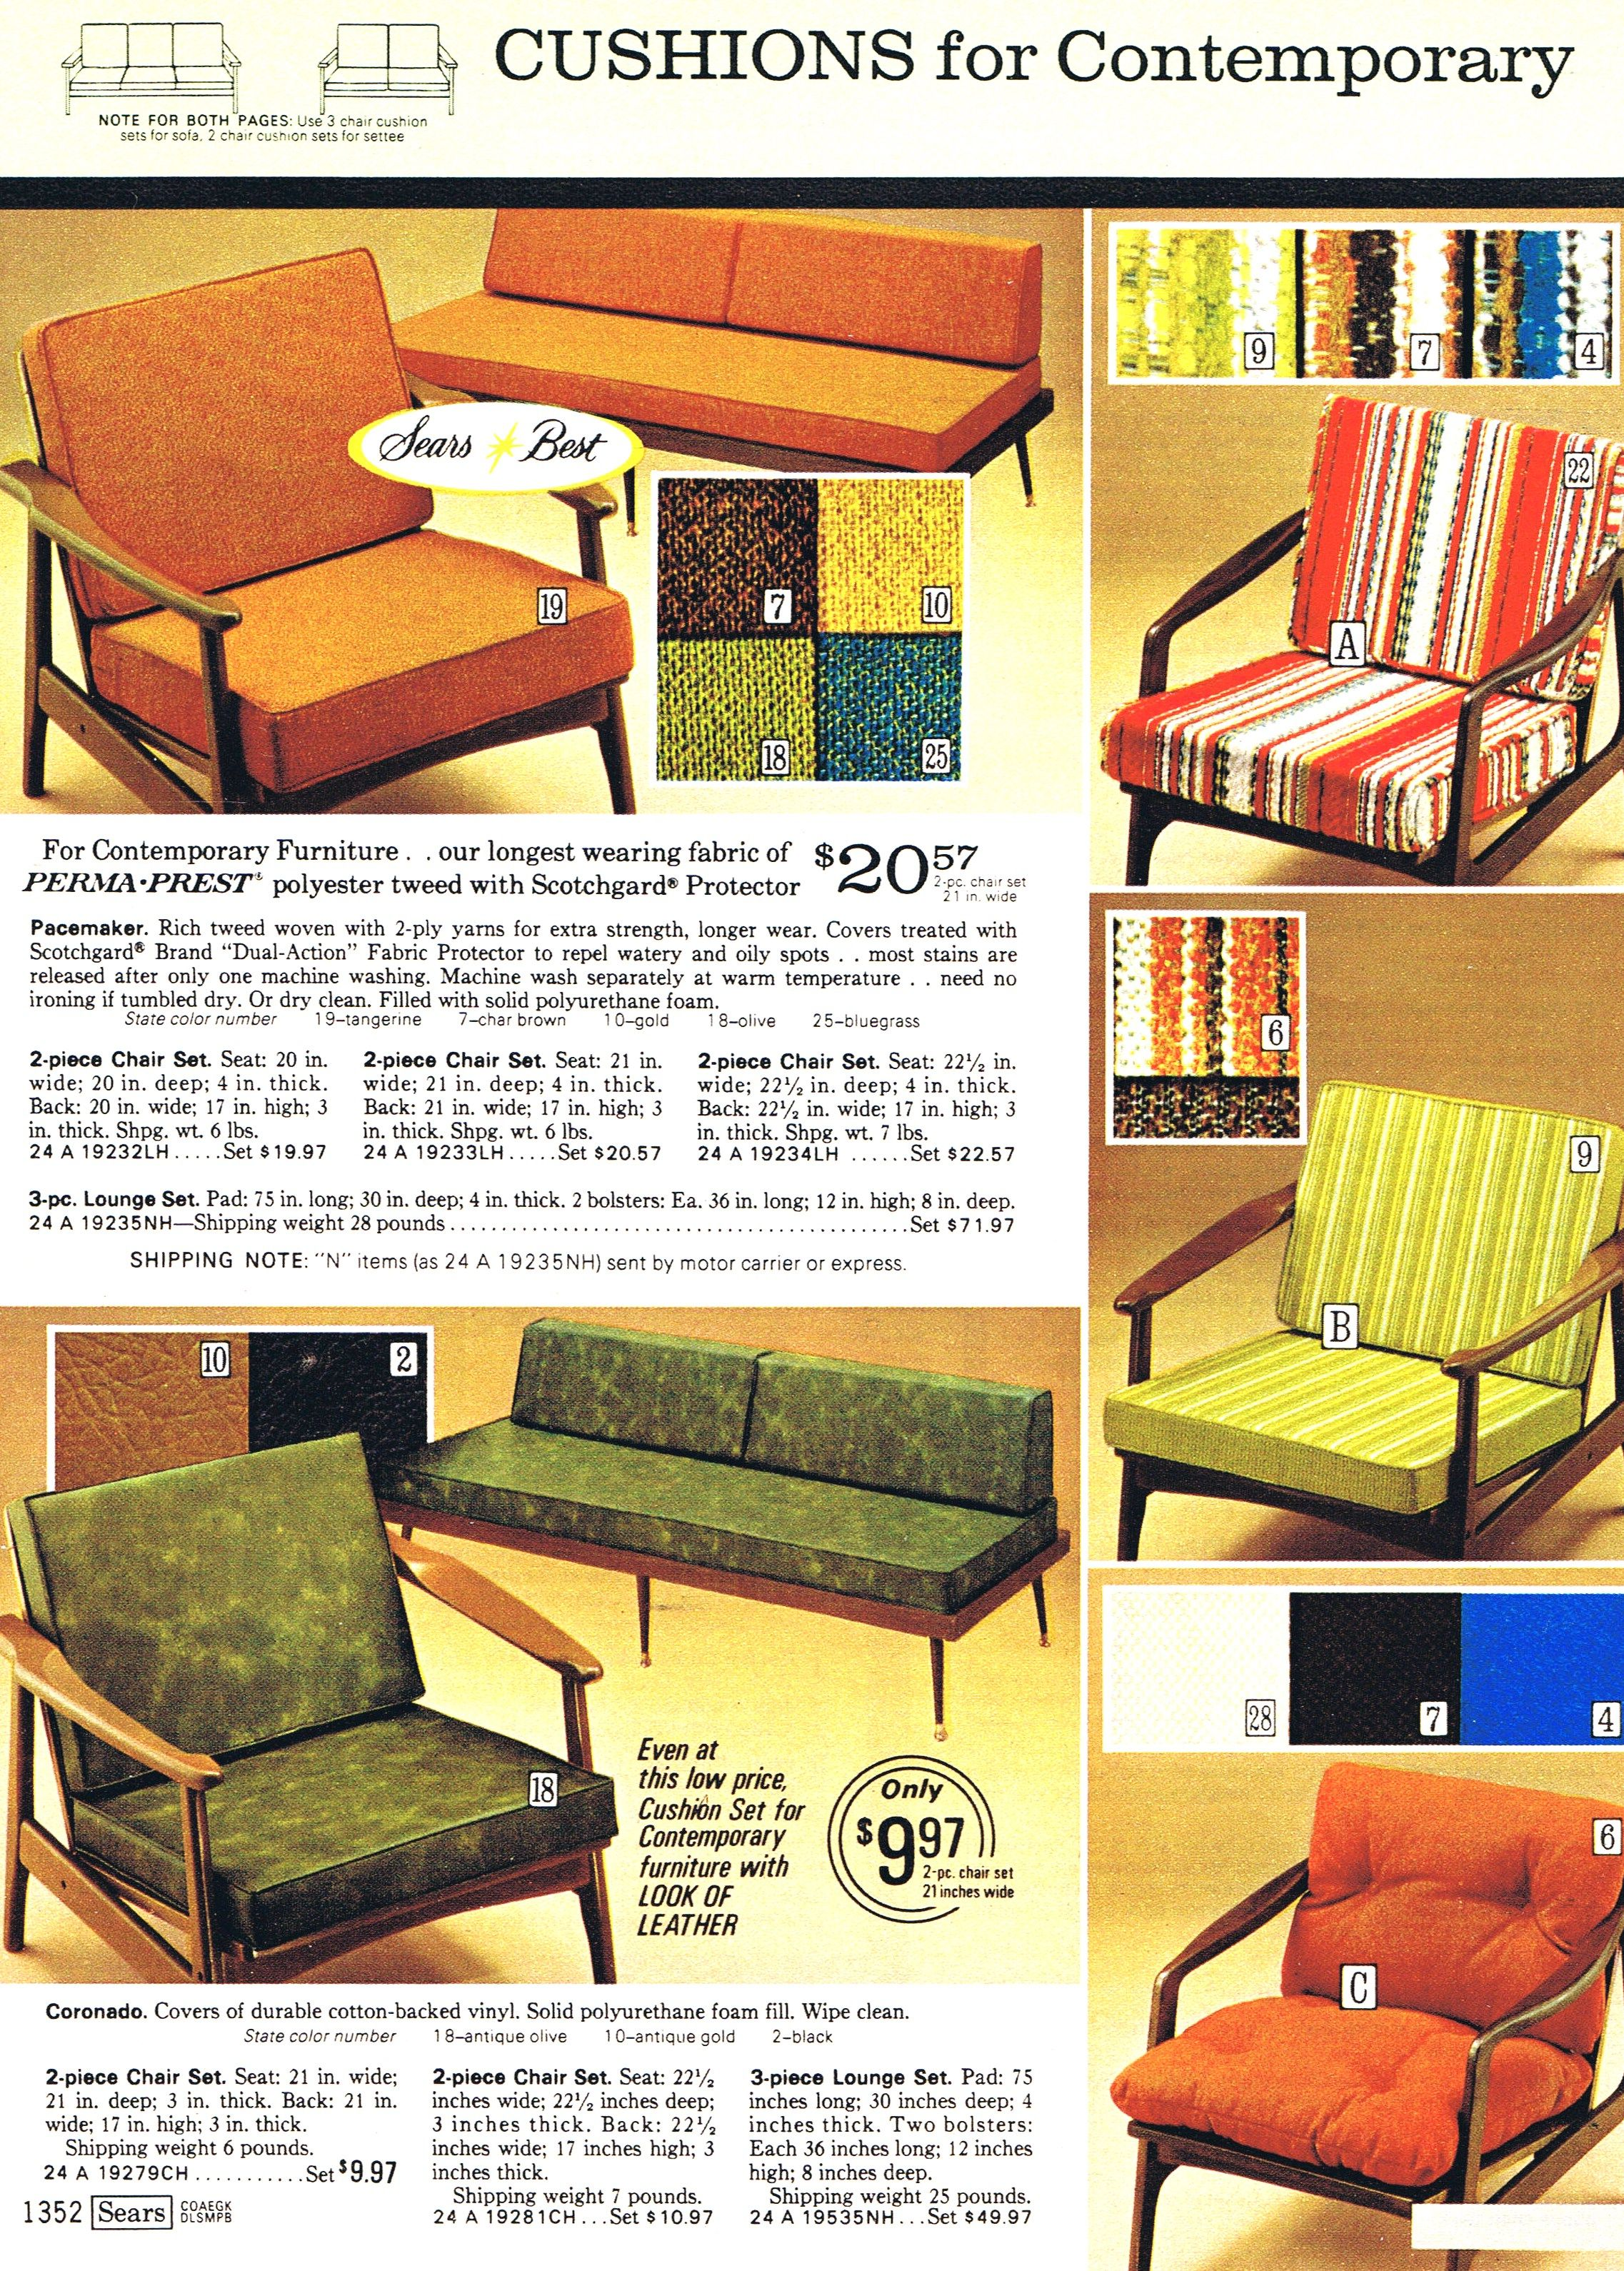 Mcm Chair Cushions From Sears Mid Century Modern Lounge Chairs Mid Century Modern Furniture Furniture